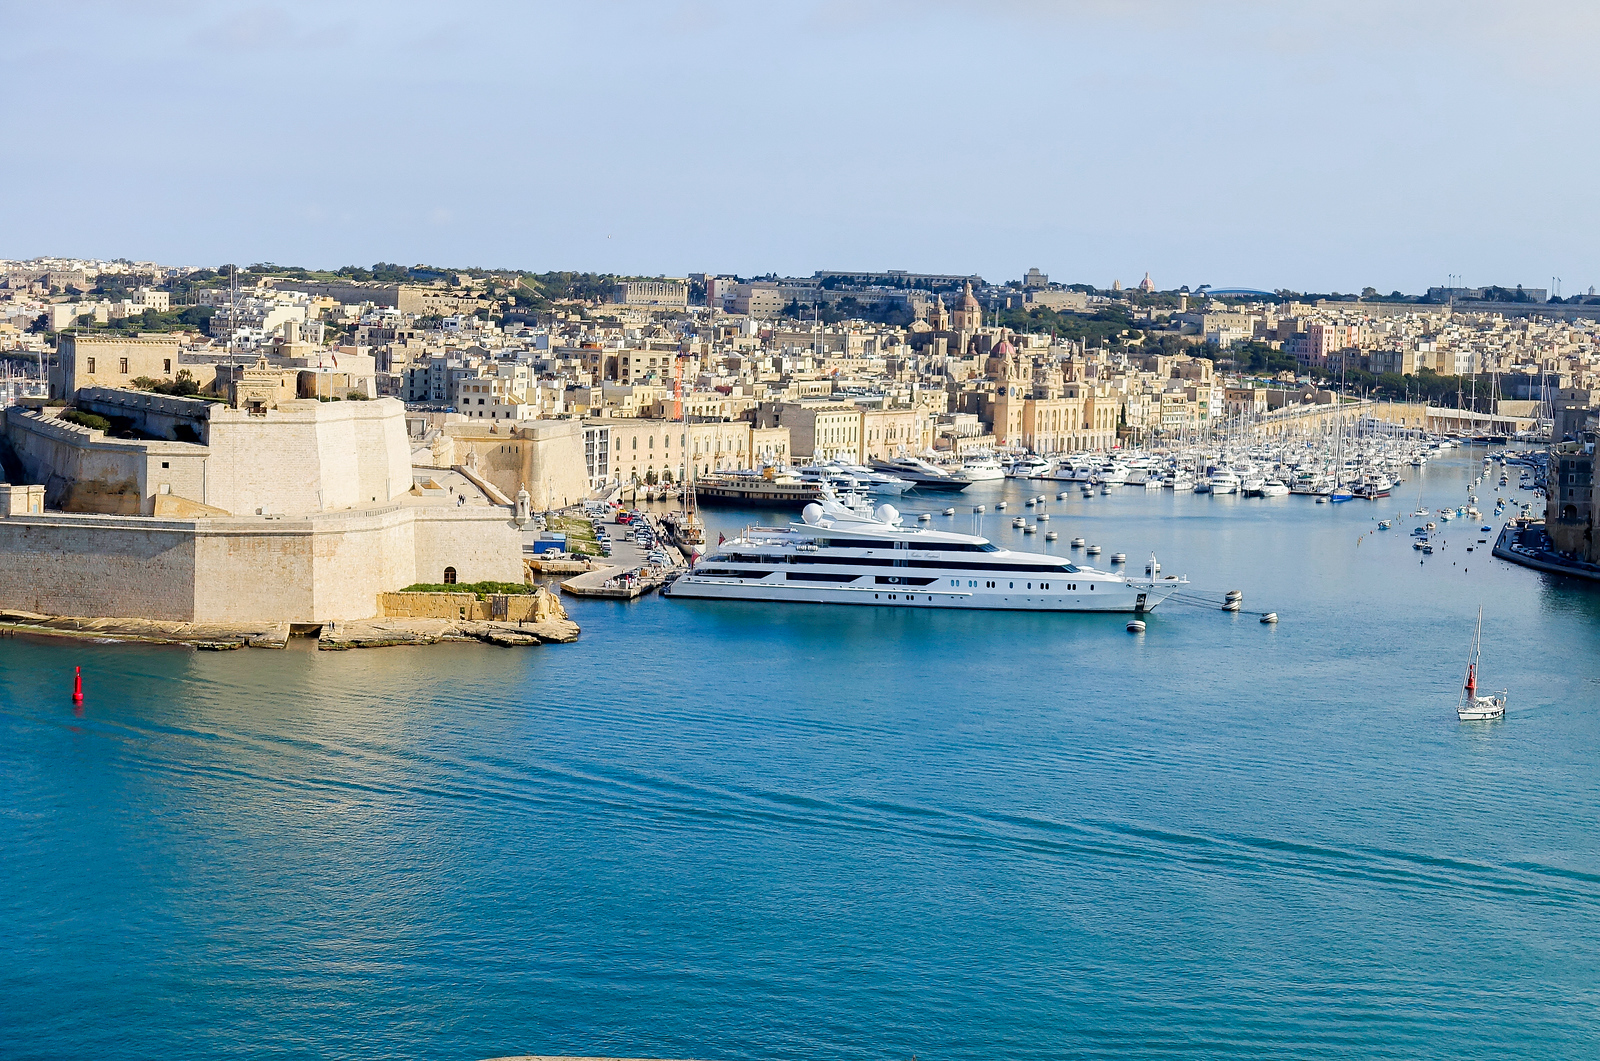 3 days in Malta - The Three Cities